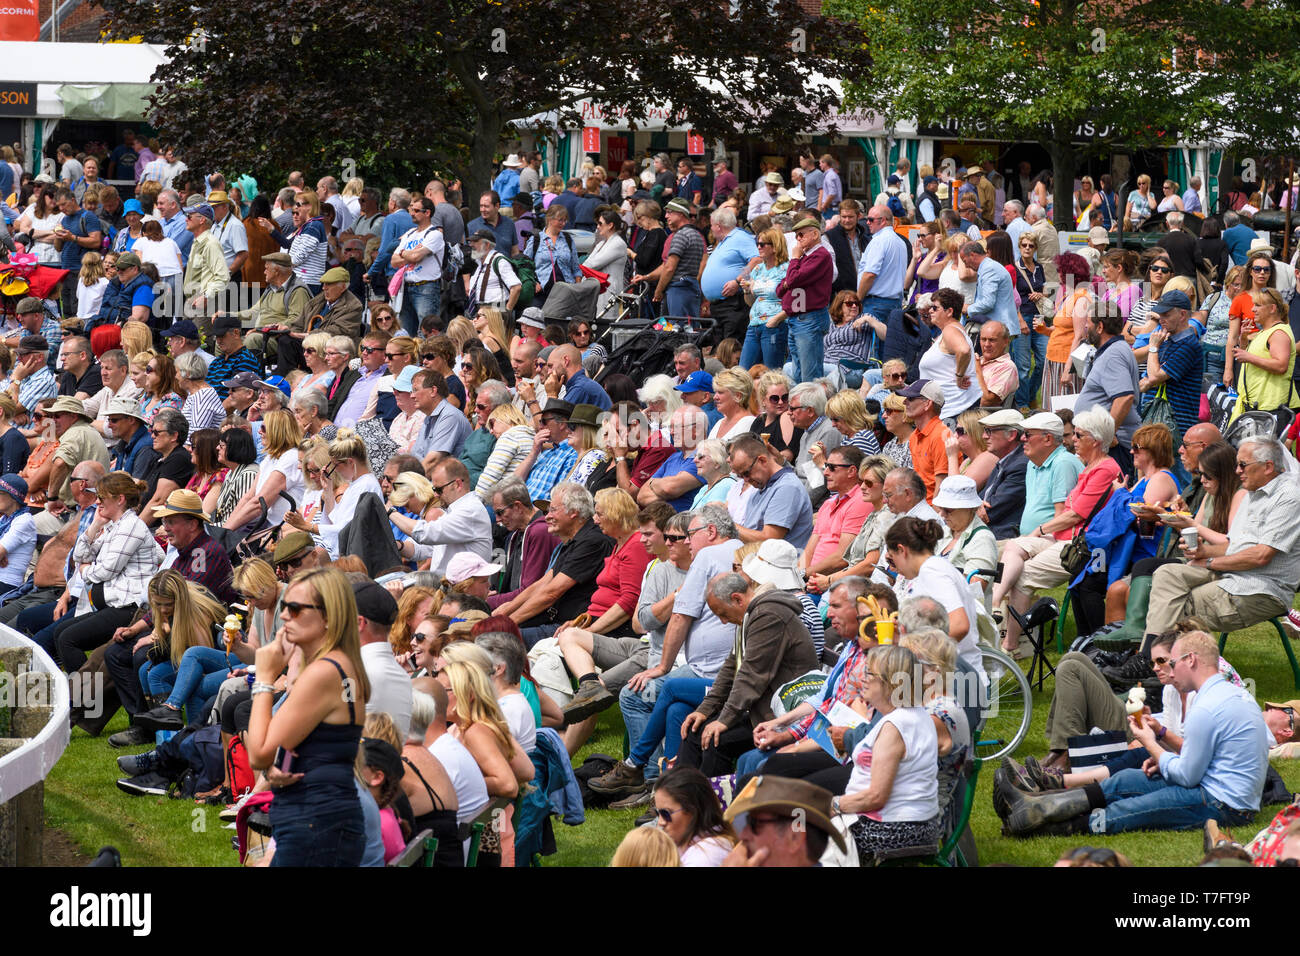 Large crowd of people spectating, gathered around main arena relaxing, sitting in sun, watching event - Great Yorkshire Show, Harrogate, England, UK. - Stock Image